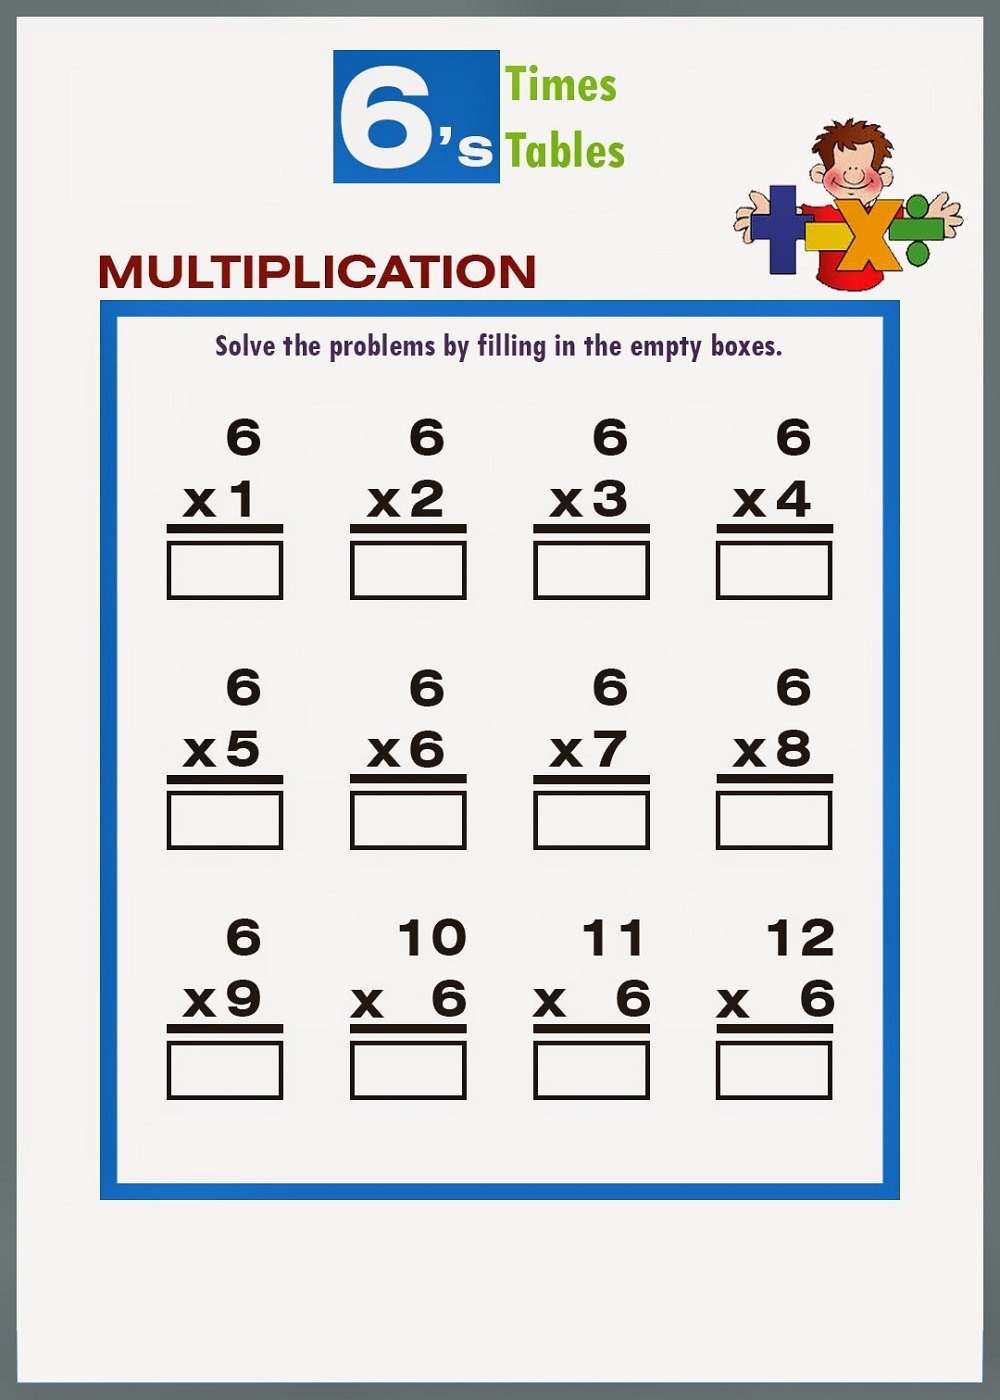 3 times table worksheet printable 100 images page 3 for Table multiplication 6